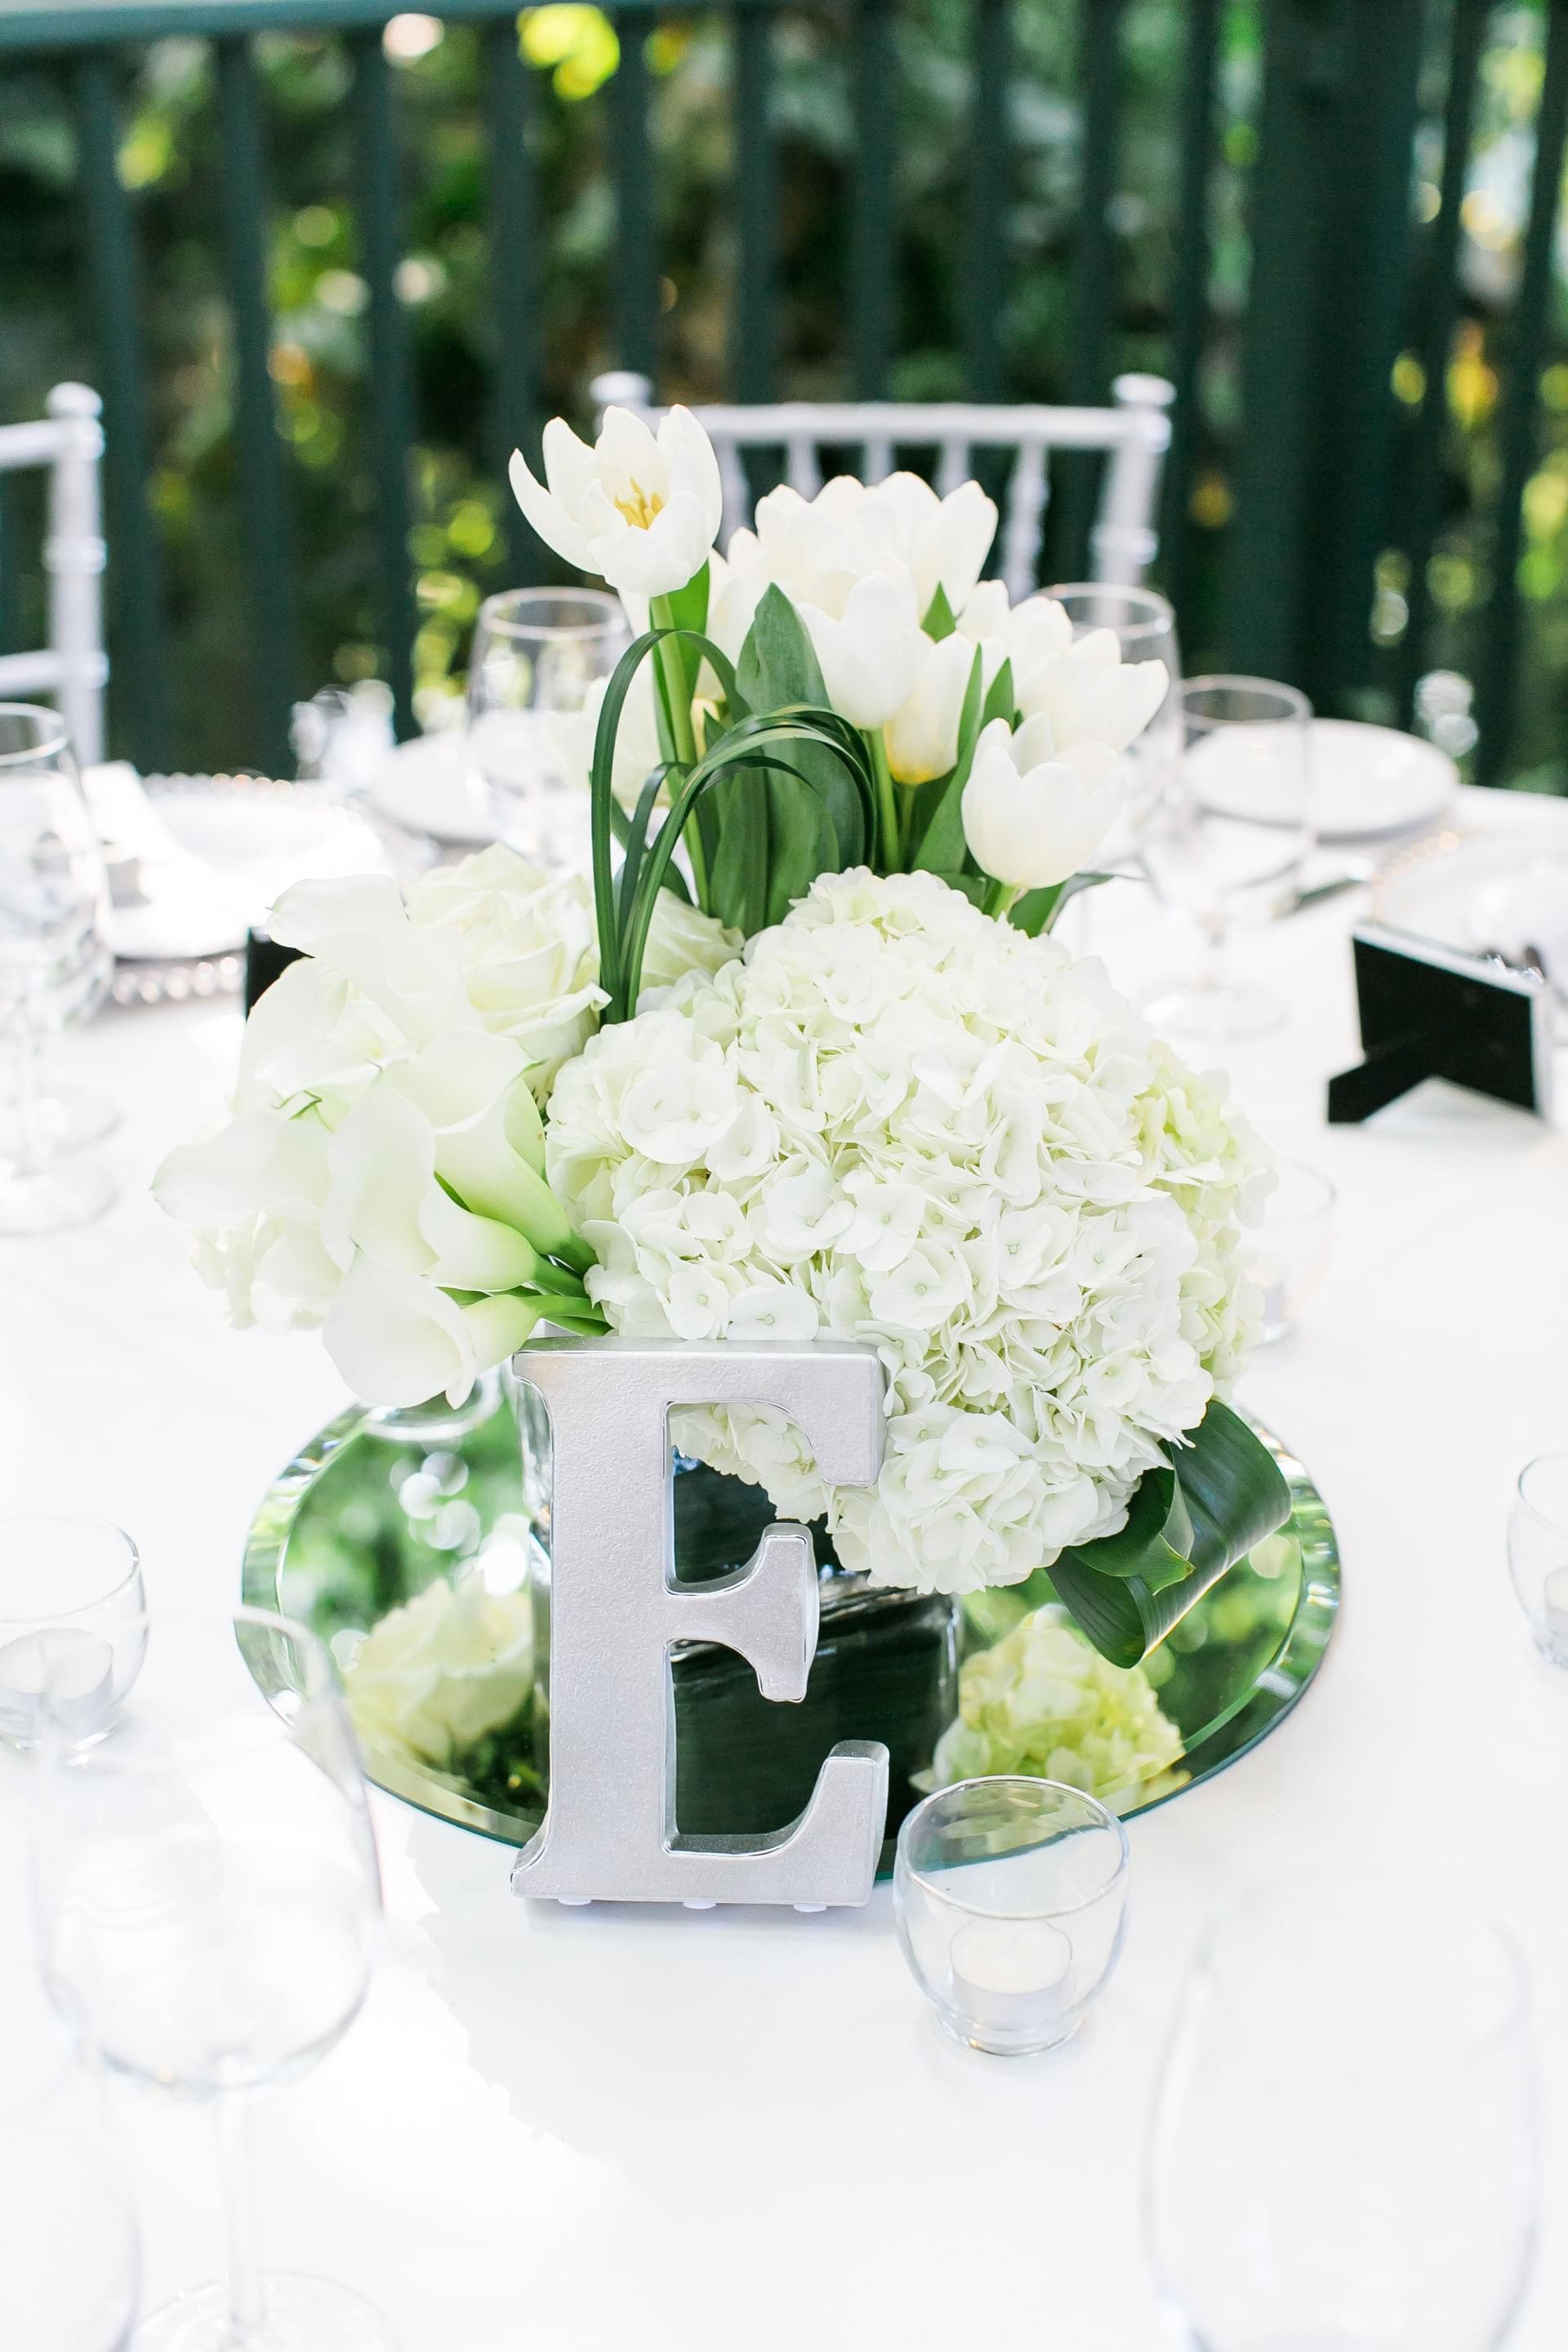 The Smarter Way to Wed | White floral centerpieces, White tablecloth ...